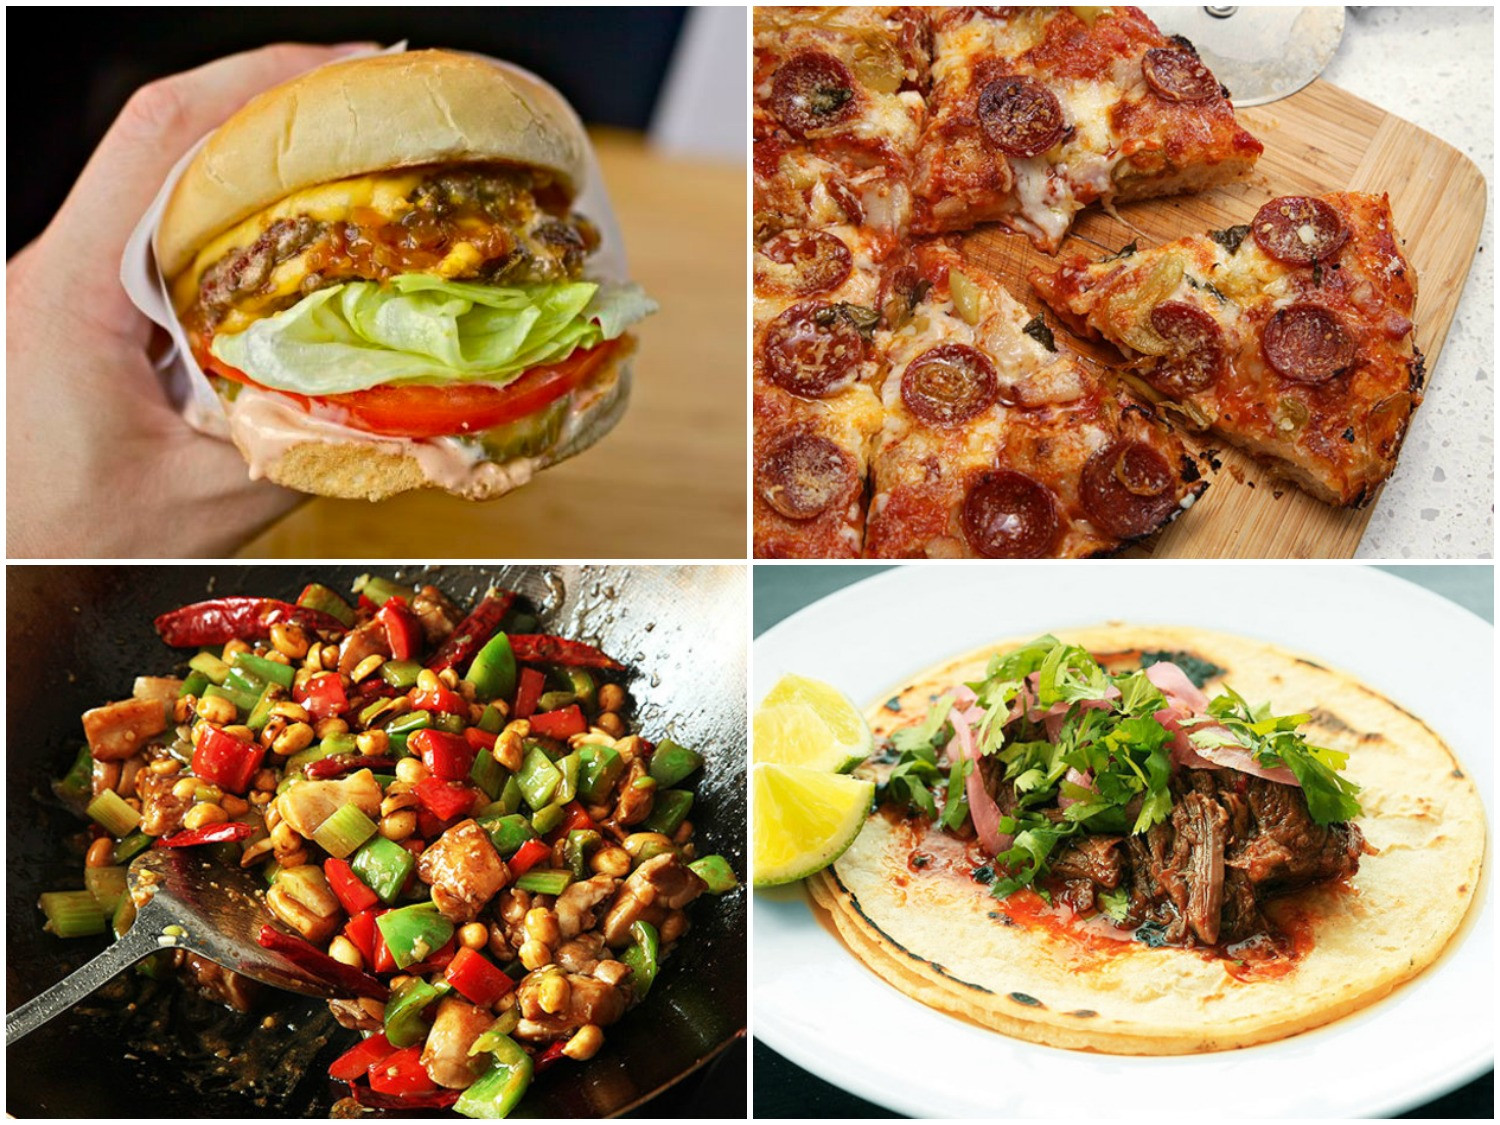 Healthy Dinner Take Out  15 Homemade Fast Food and Takeout Favorites That Are at